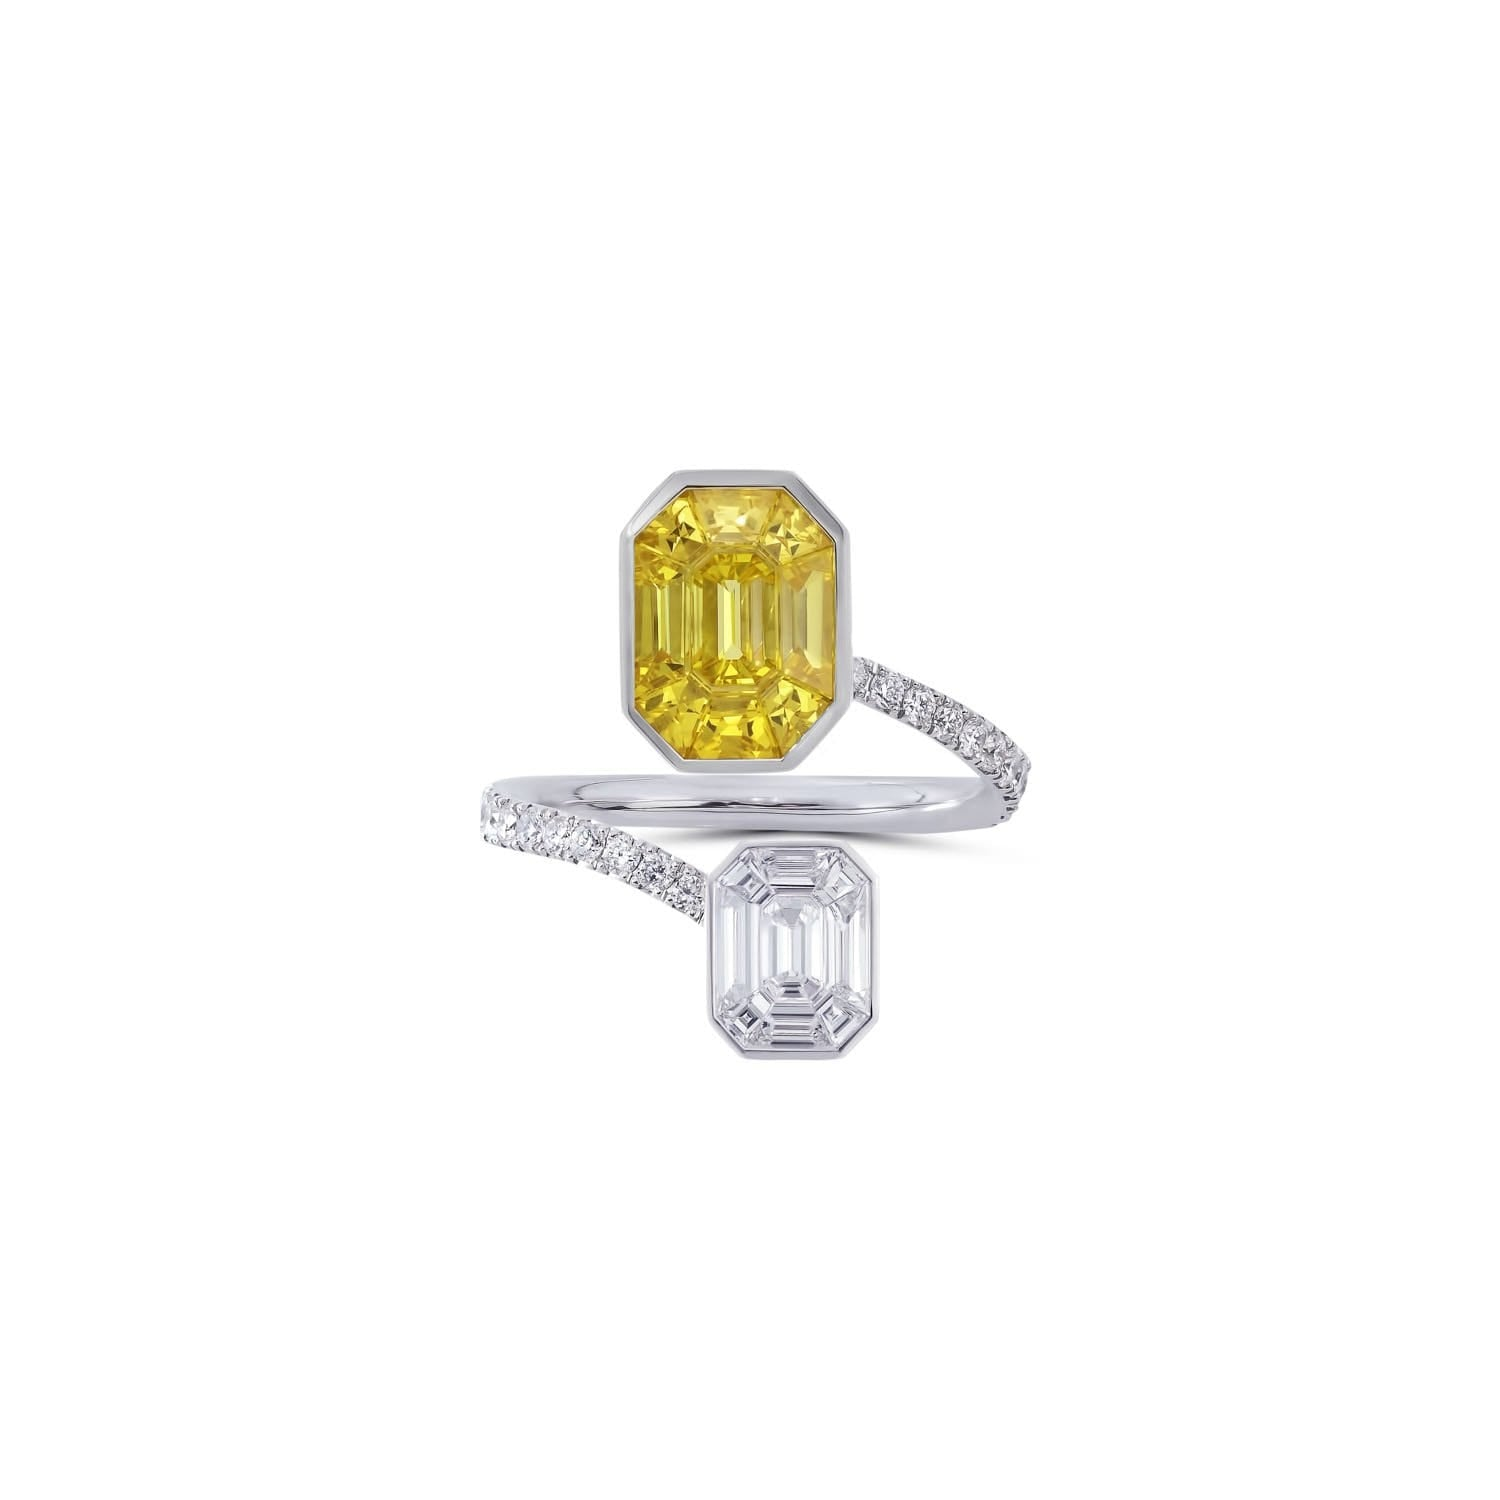 MUSE PANTONI Ring - STENZHORN JEWELLERY